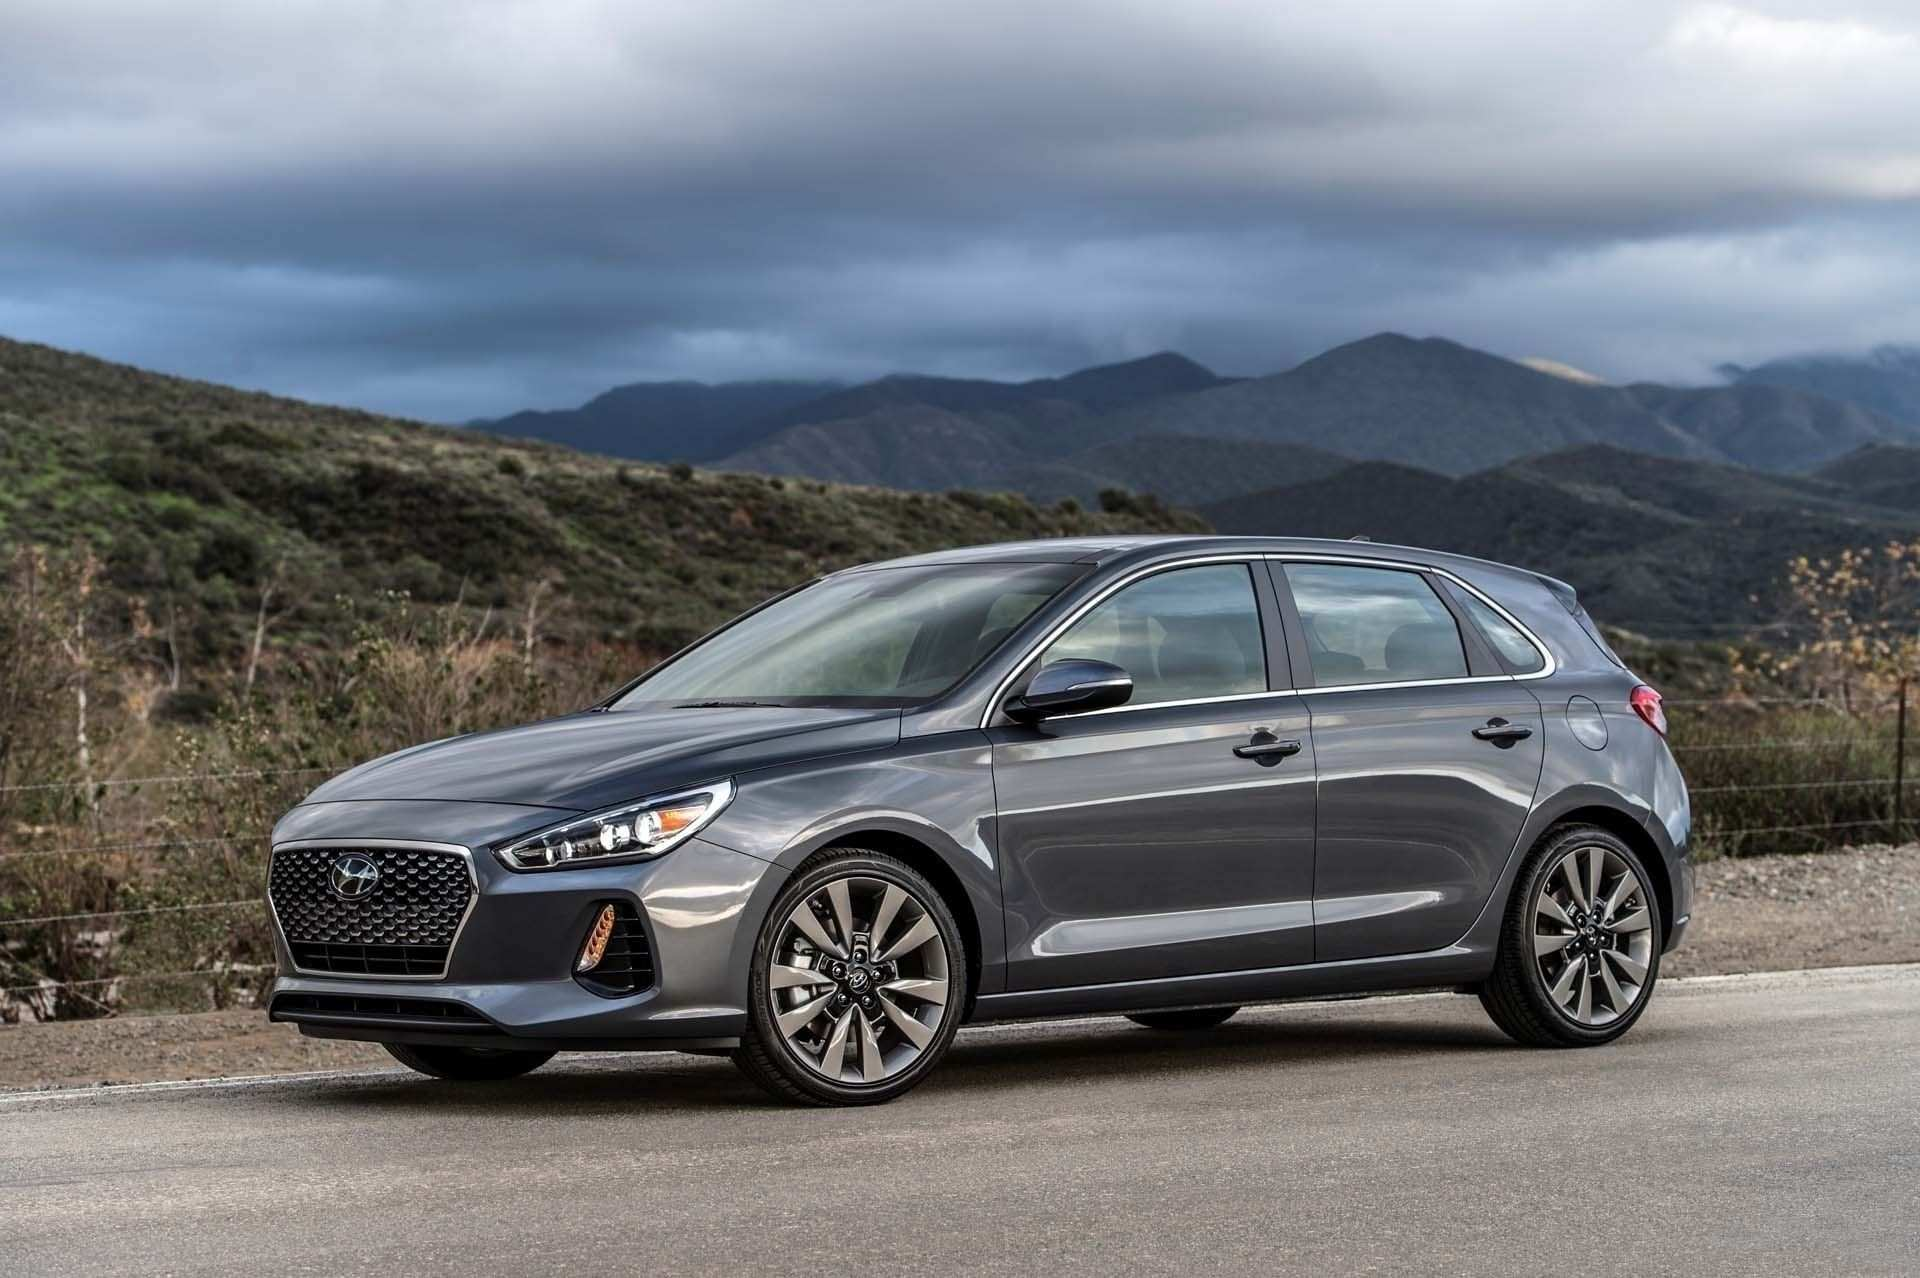 55 All New 2019 Hyundai Accent Hatchback Price And Review